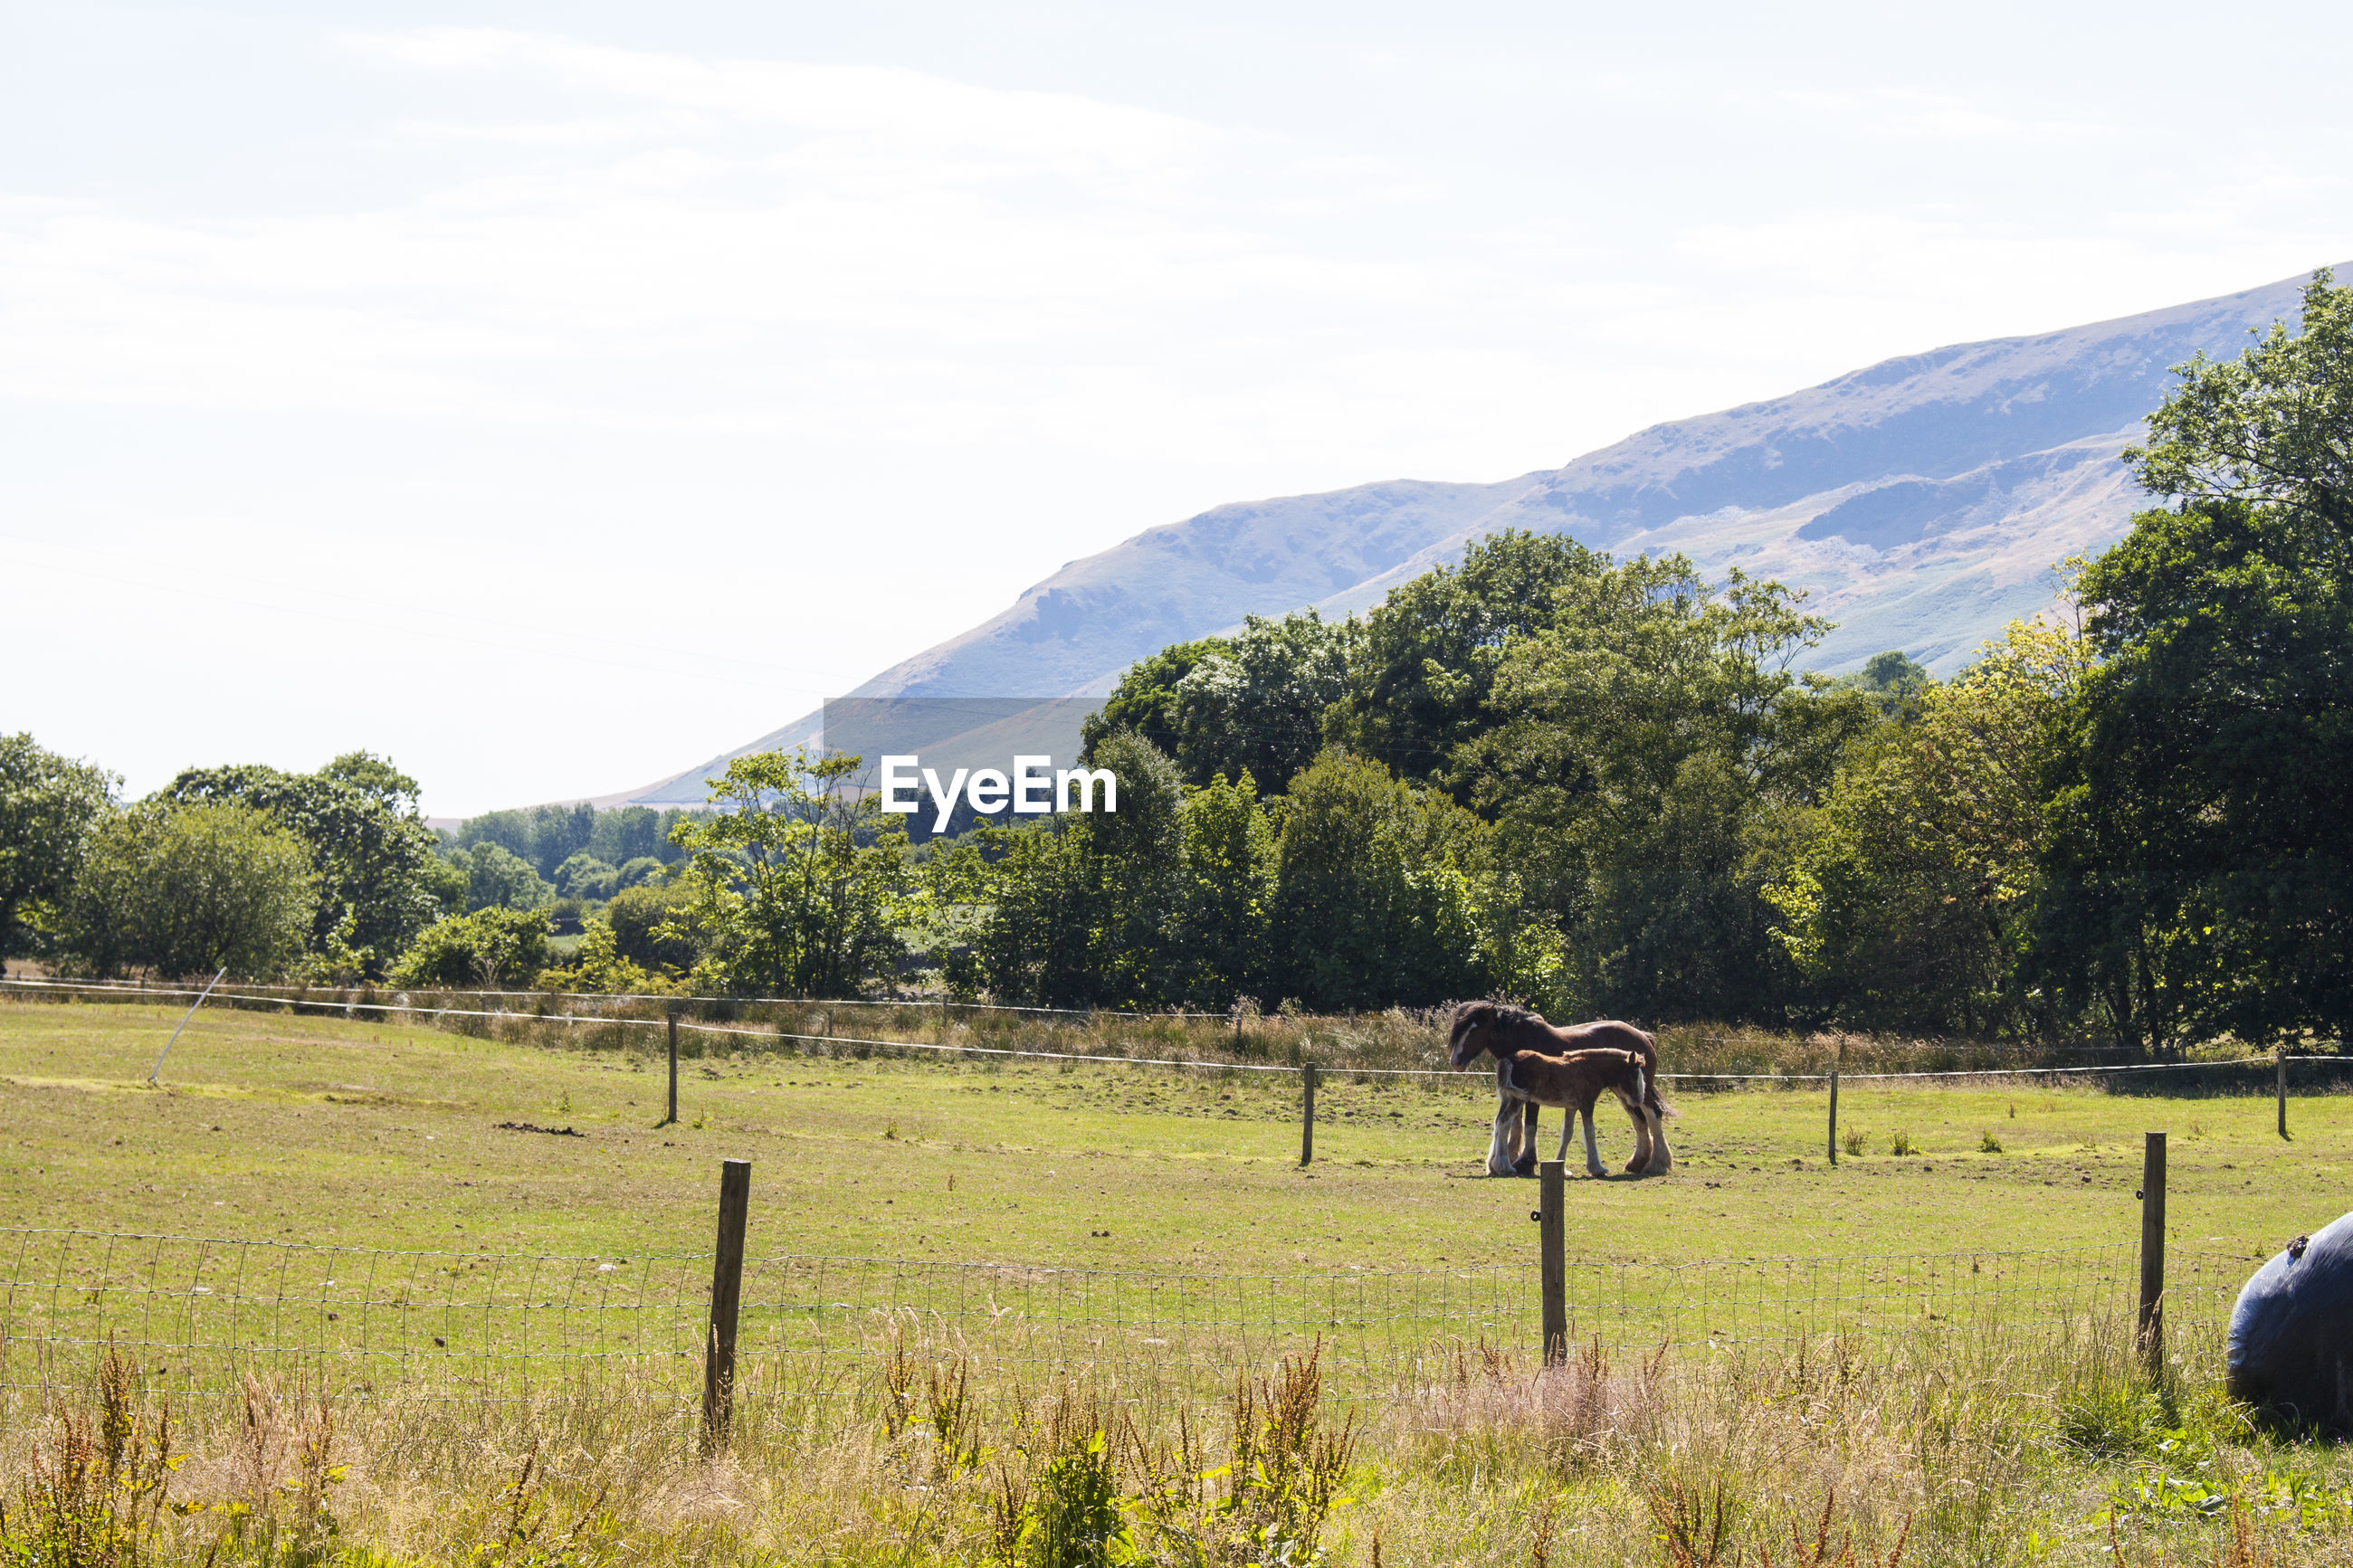 Scenic view of horses in grassy field against sky